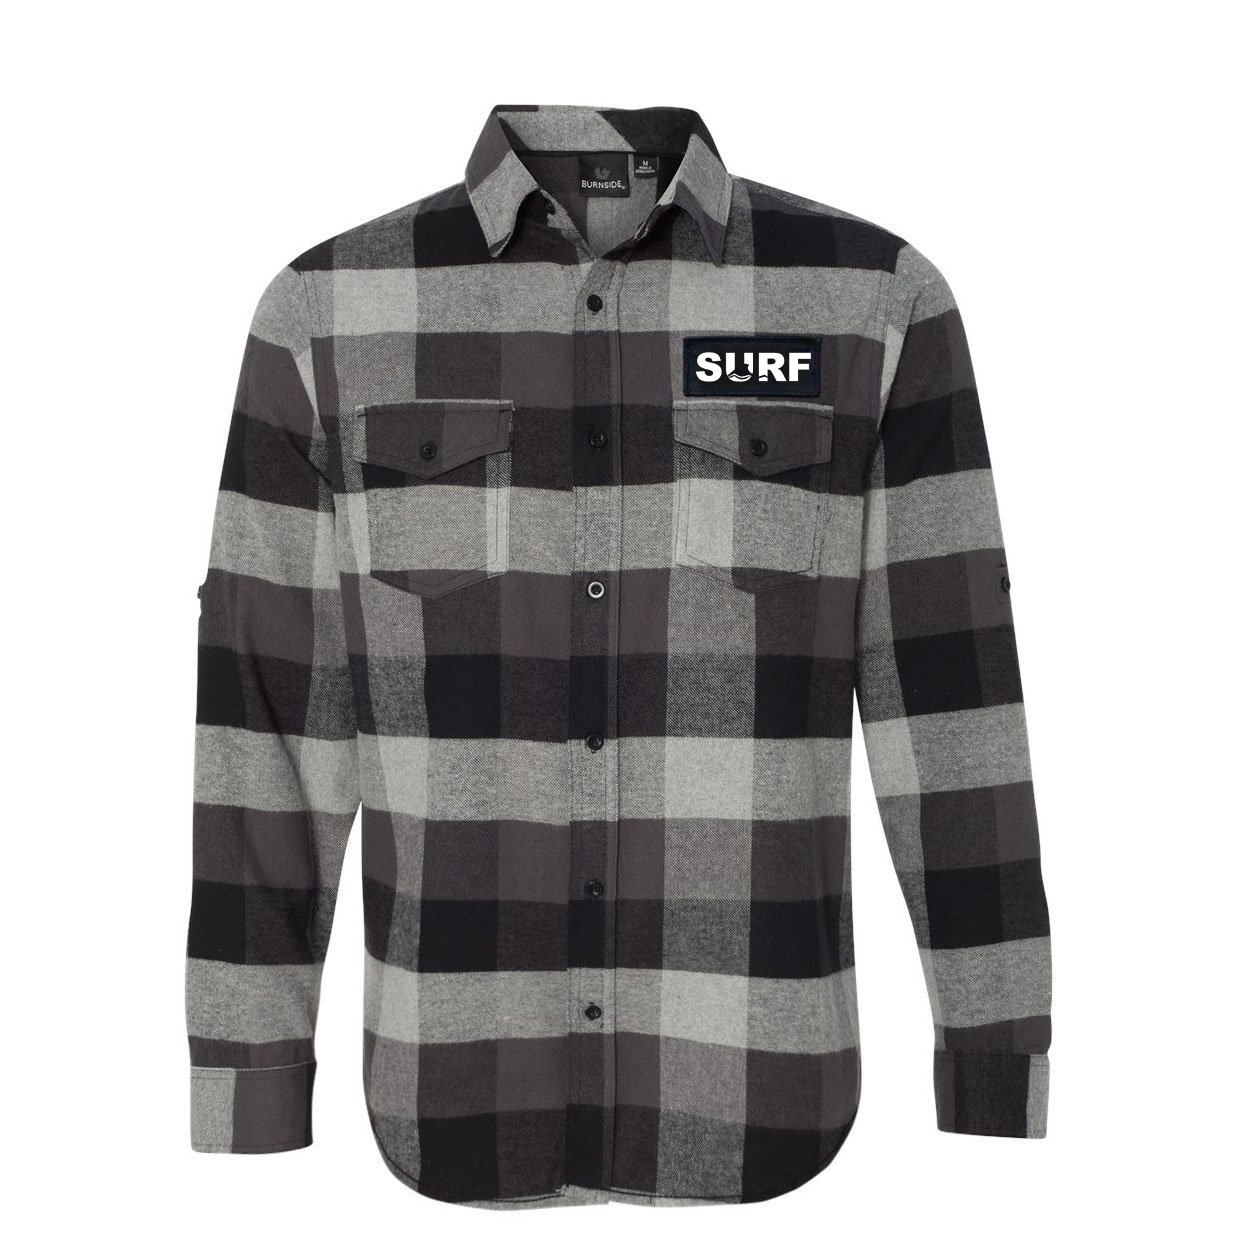 Surf Wave Logo Classic Unisex Long Sleeve Woven Patch Flannel Shirt Black/Gray (White Logo)